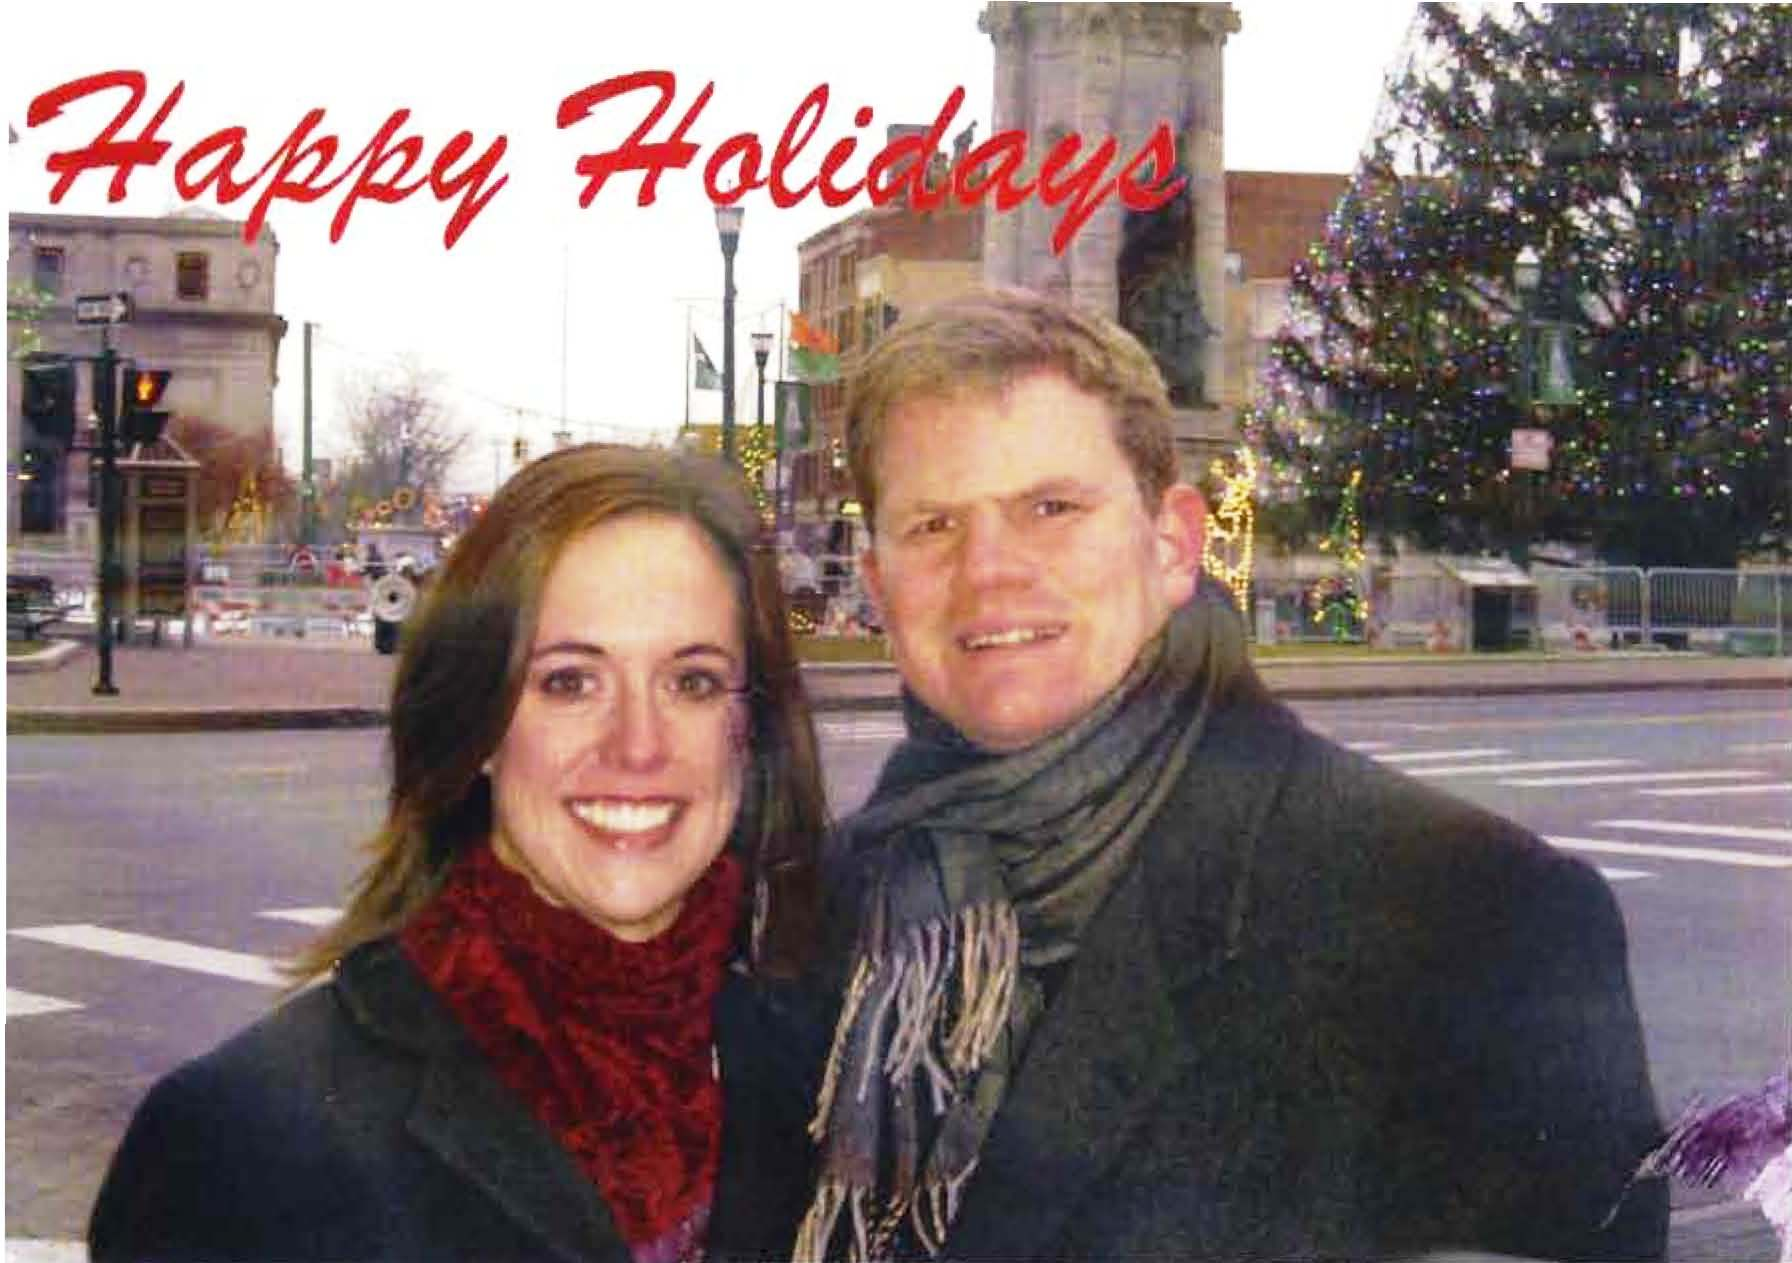 holiday_greetings_2008_maffei_nyreblog_com__Page_1.jpg